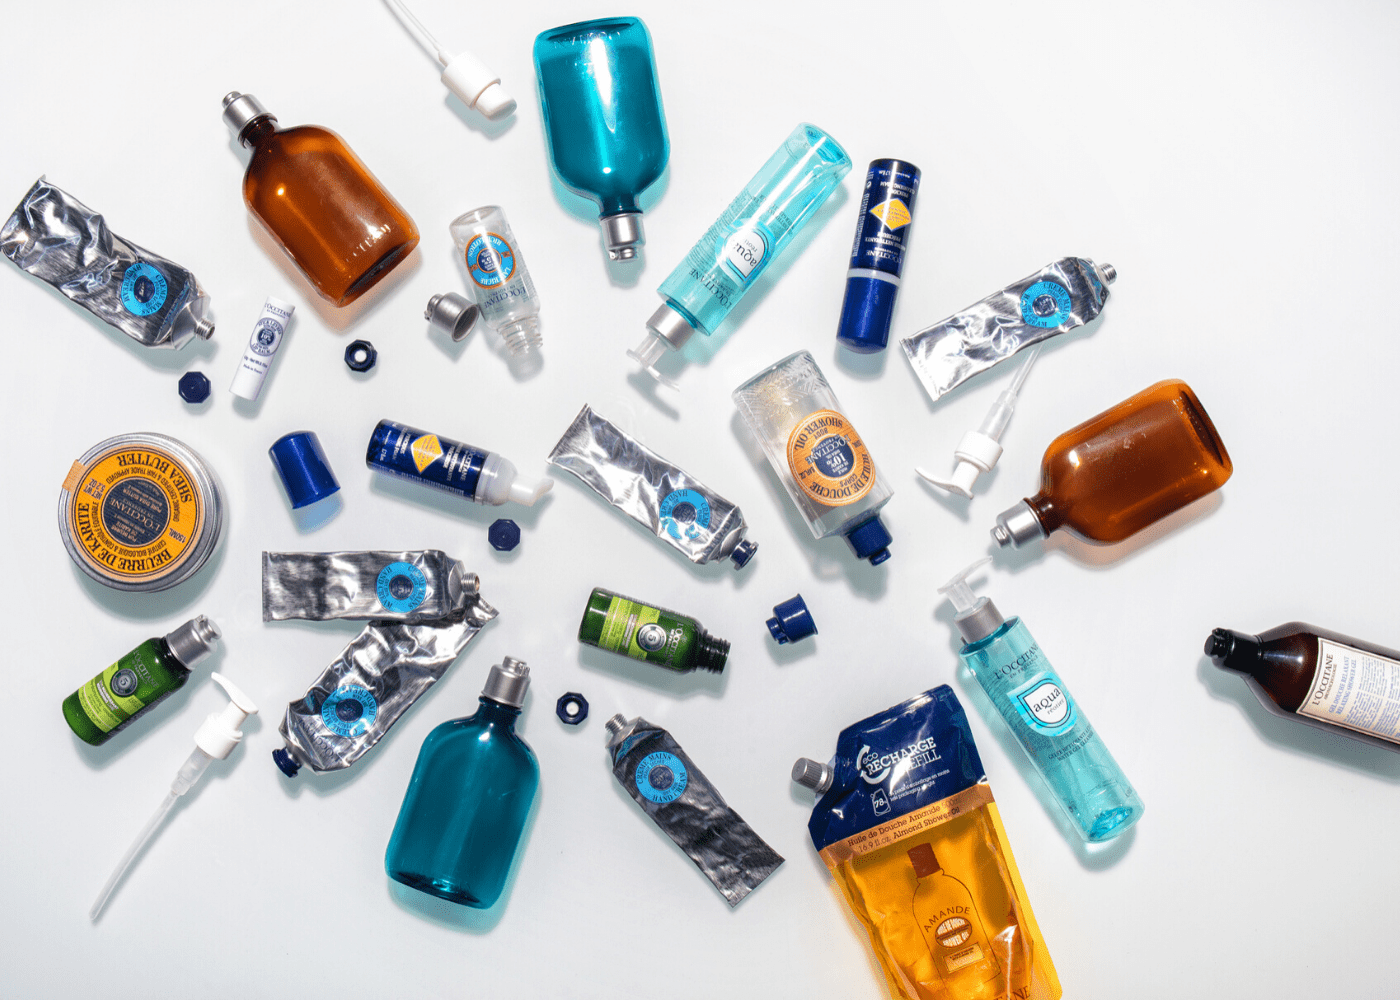 Loccitane Big Little Things Recycling Program | March 2020 beauty news | Honeycombers Singapore